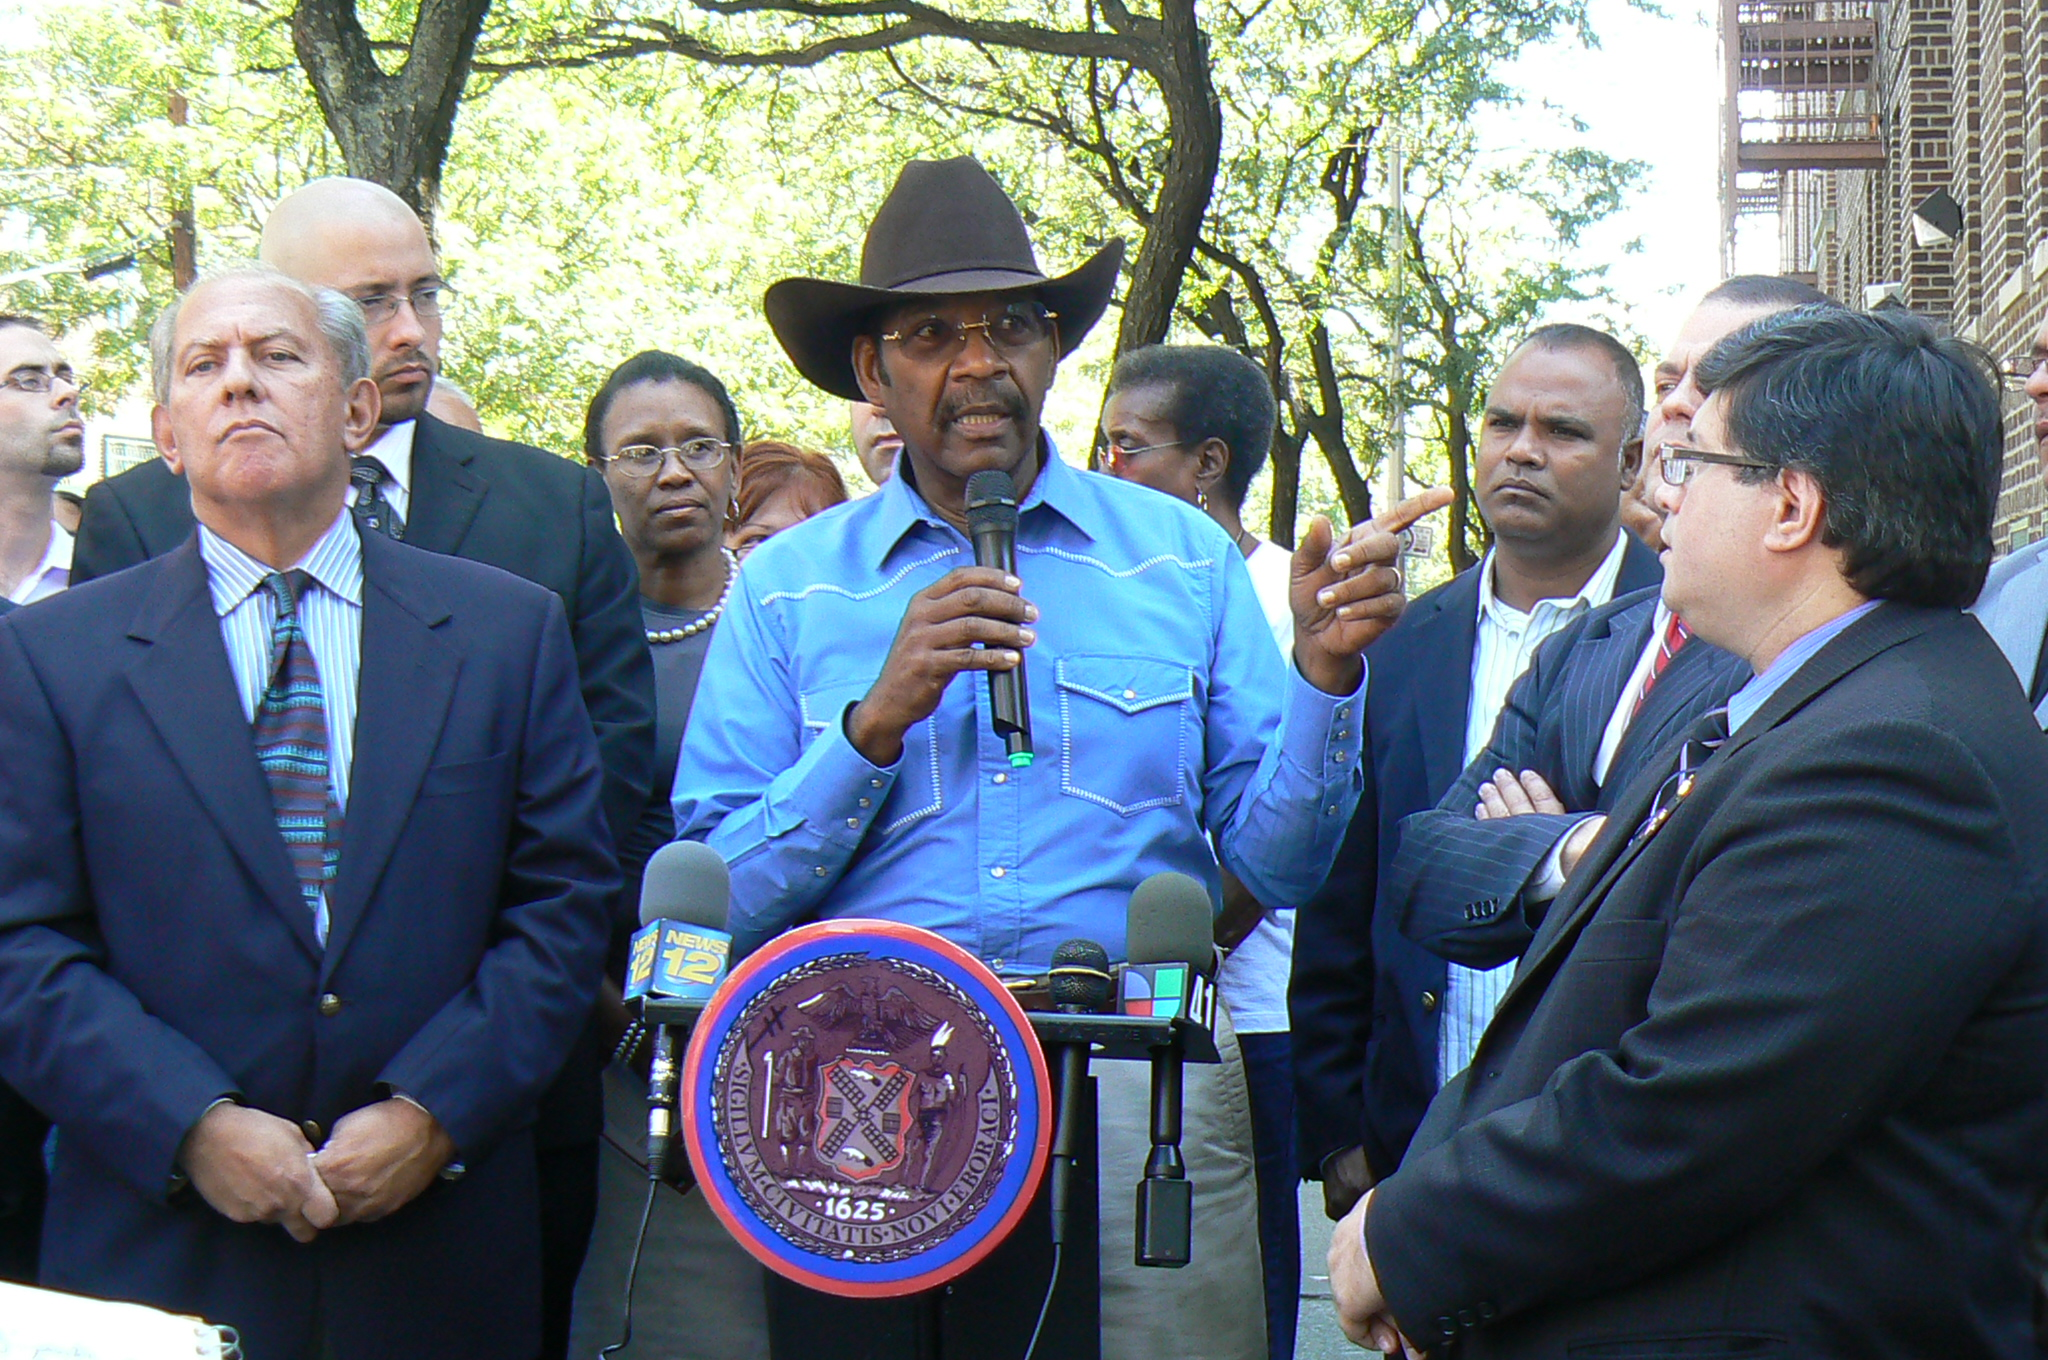 Senator Ruben Diaz, Sr. at South Bronx press conference